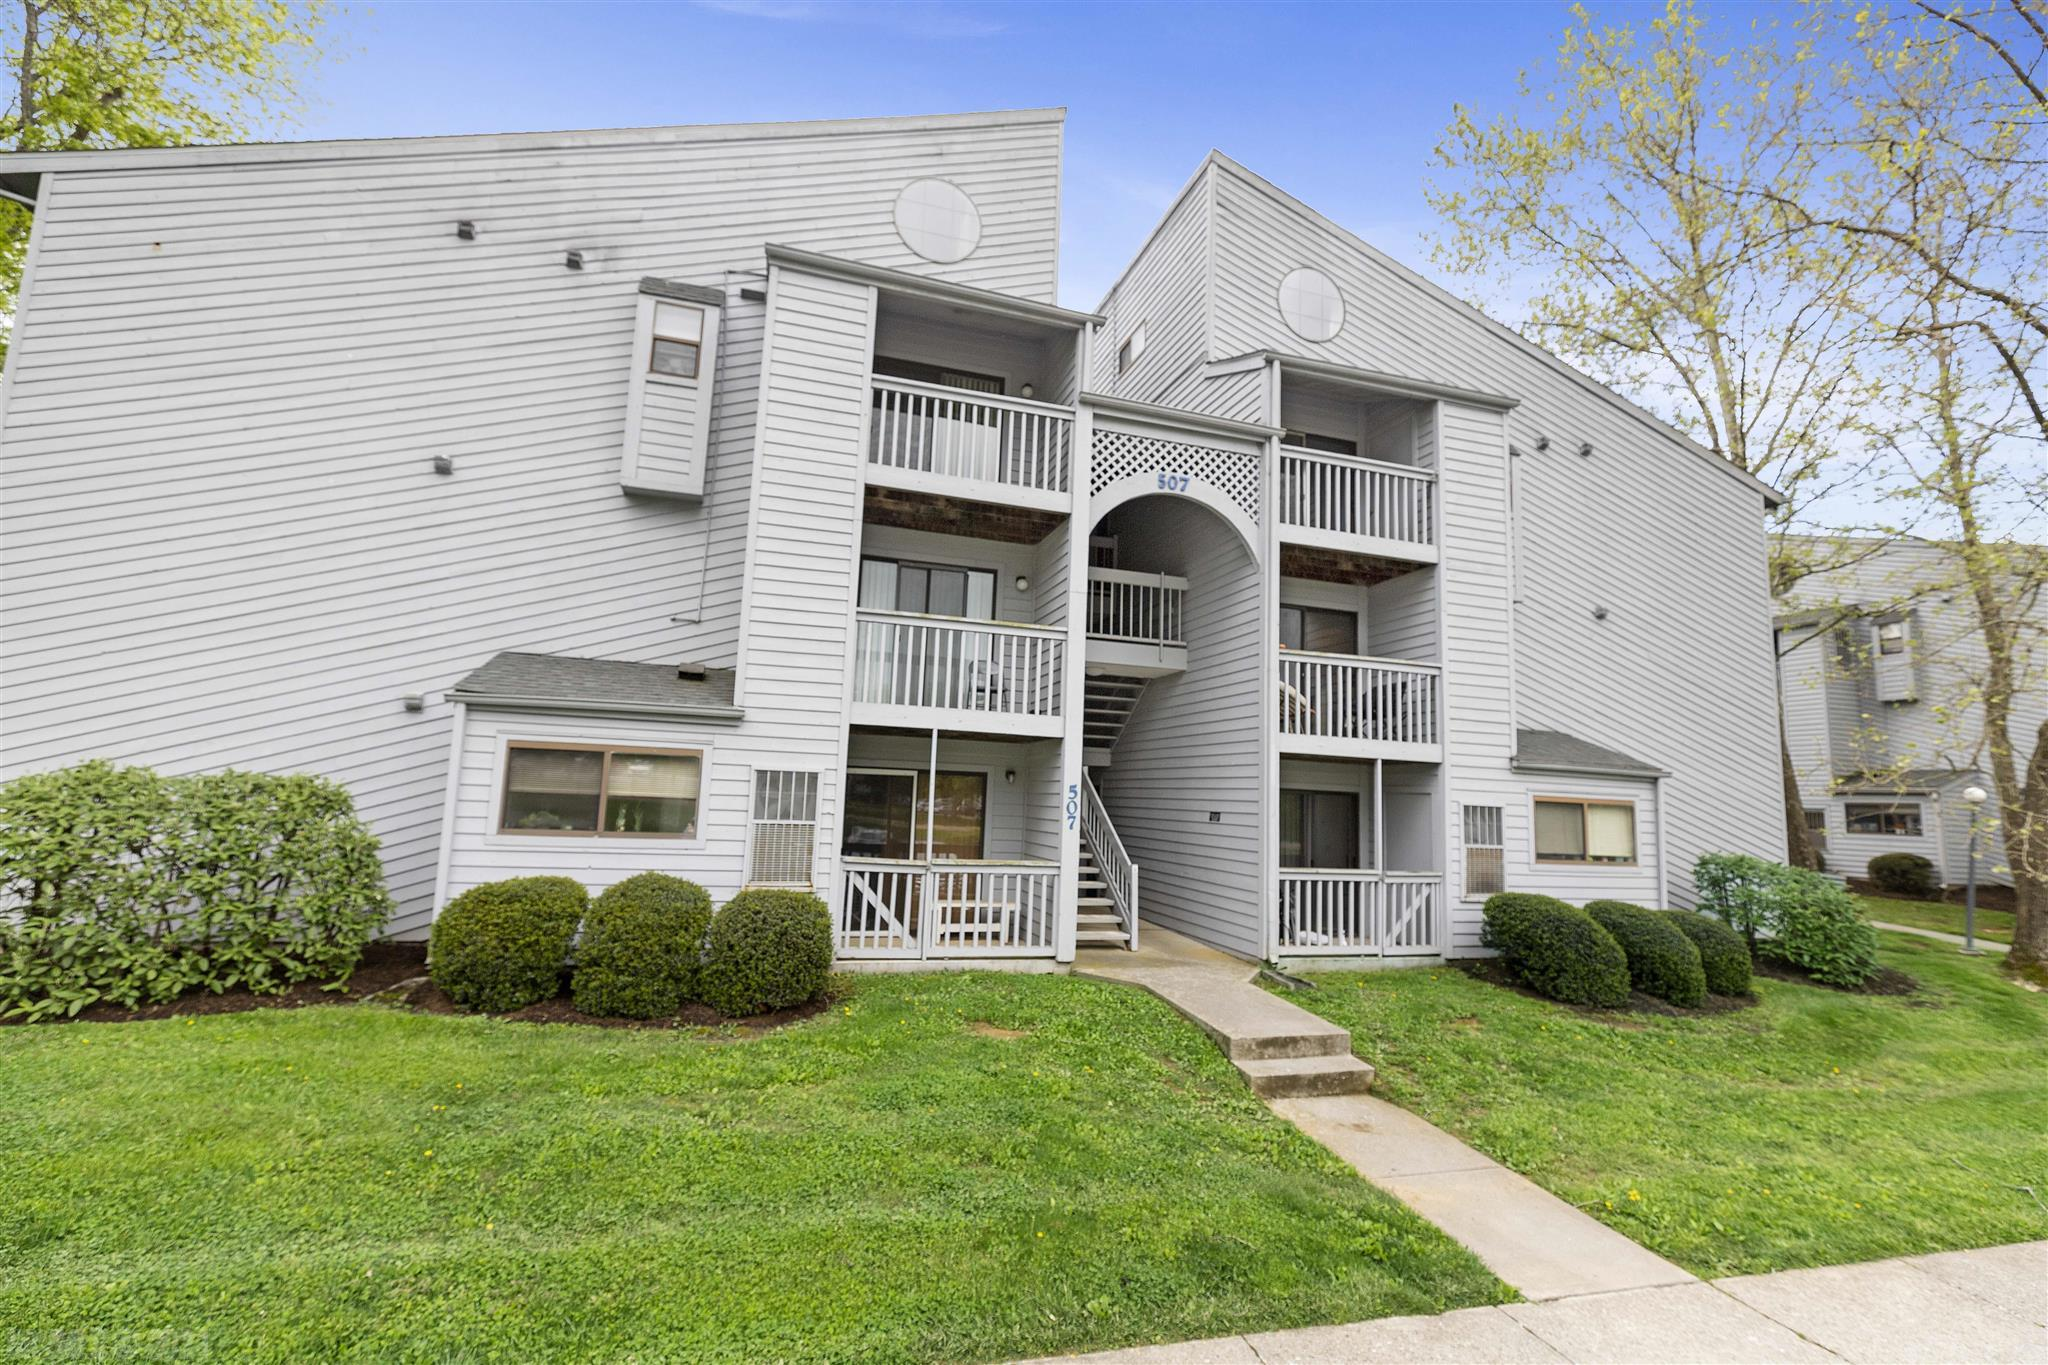 Adorable second floor studio condo with deck facing greens pace. Currently leased until 7/13/2022. Convenient  to VT Campus, public transportation, shopping, and restaurants. Great investment opportunity or student housing.